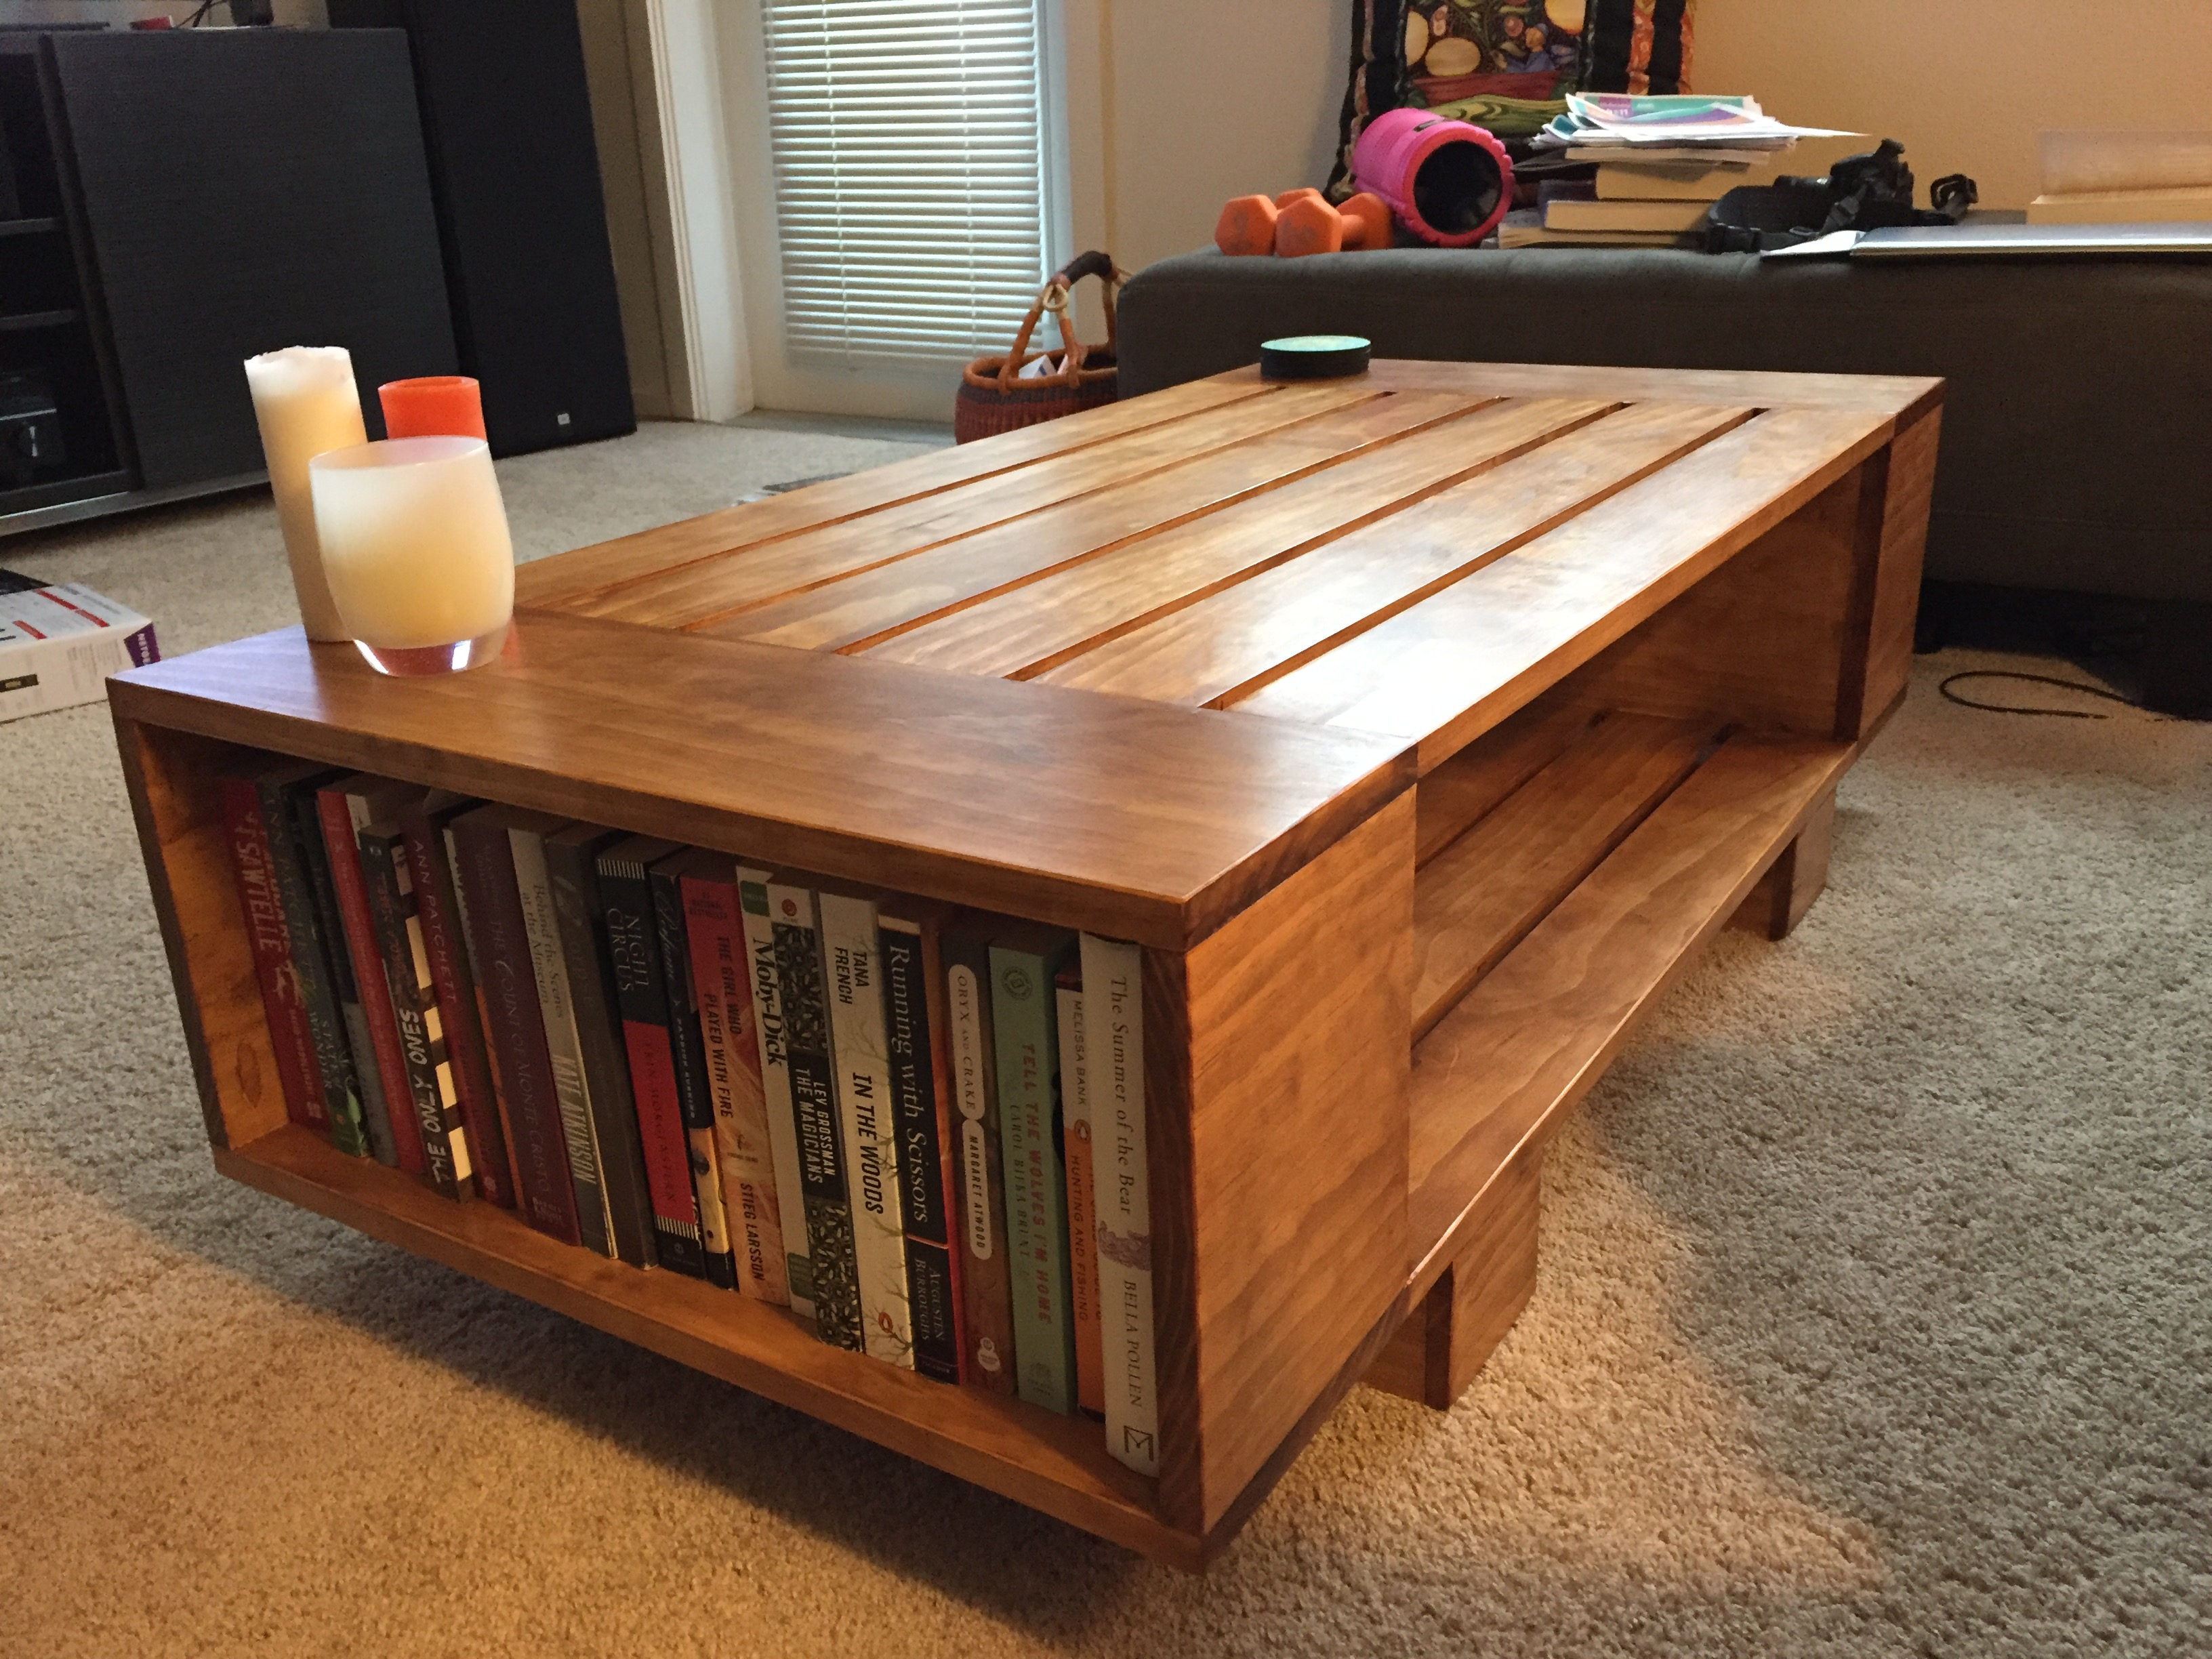 slat coffee table incorporated book shelves